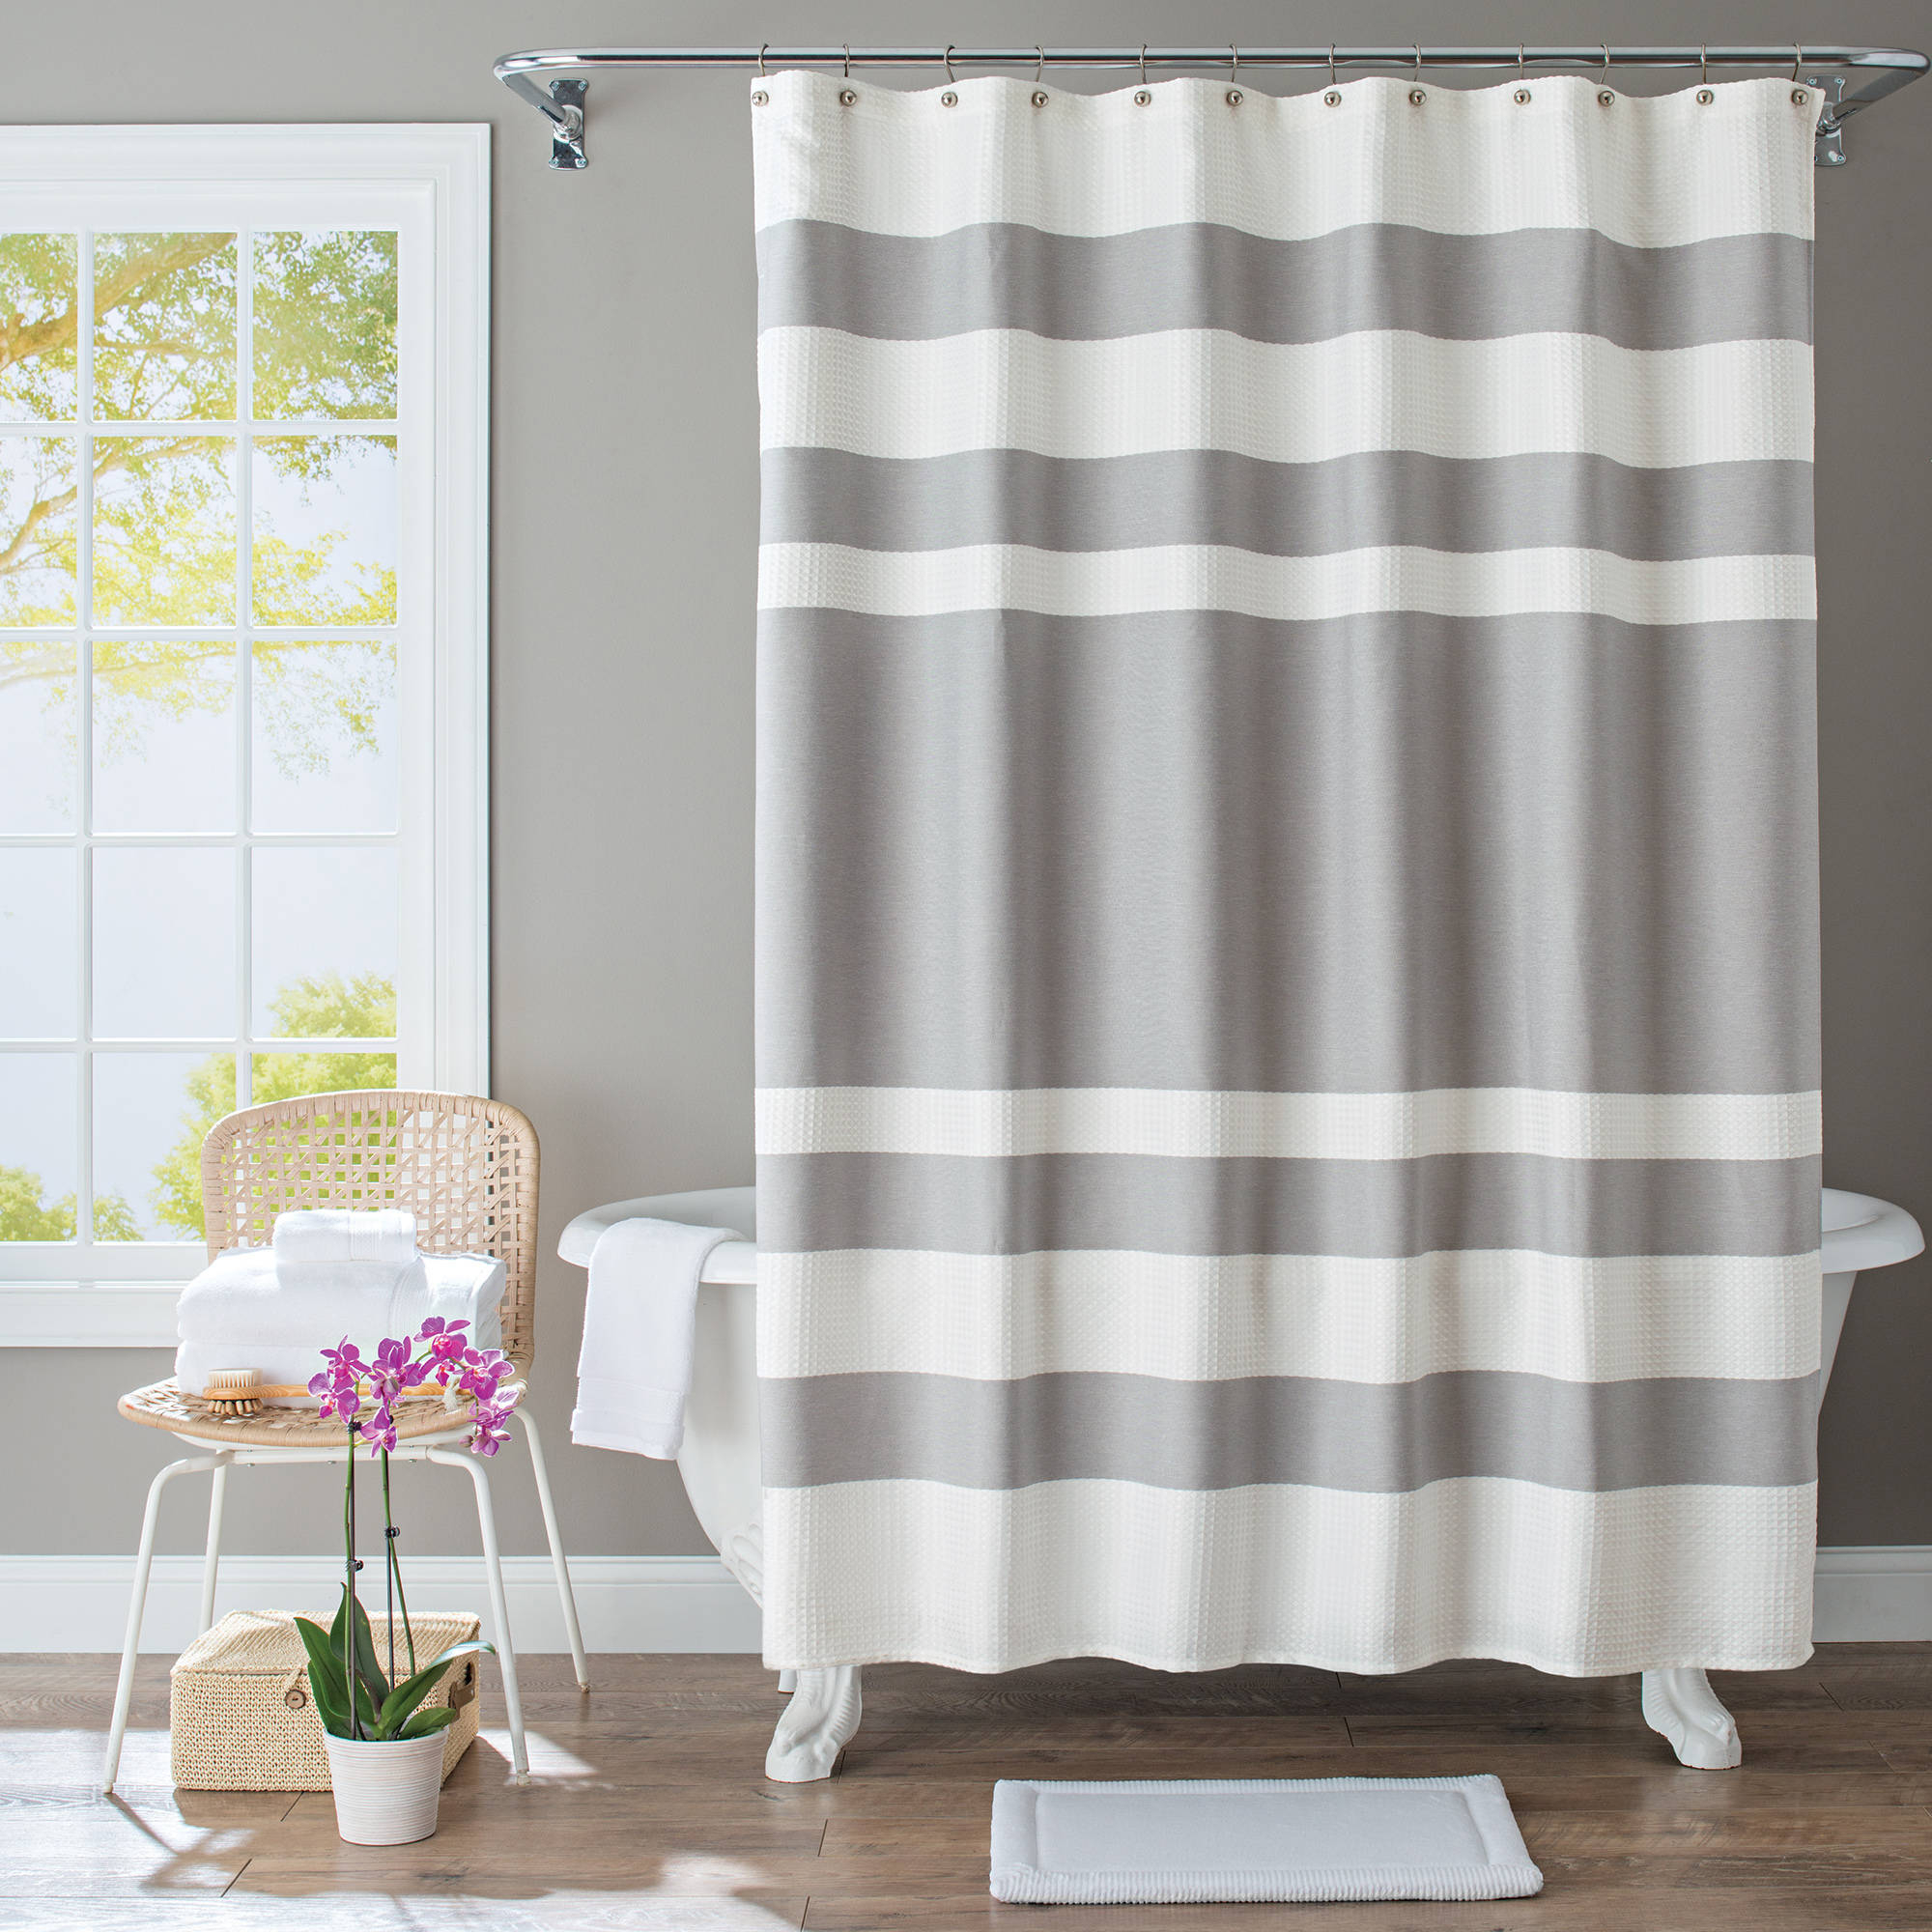 Black And White Ticking Stripe Shower Curtain Shower Curtains Design throughout dimensions 2000 X 2000